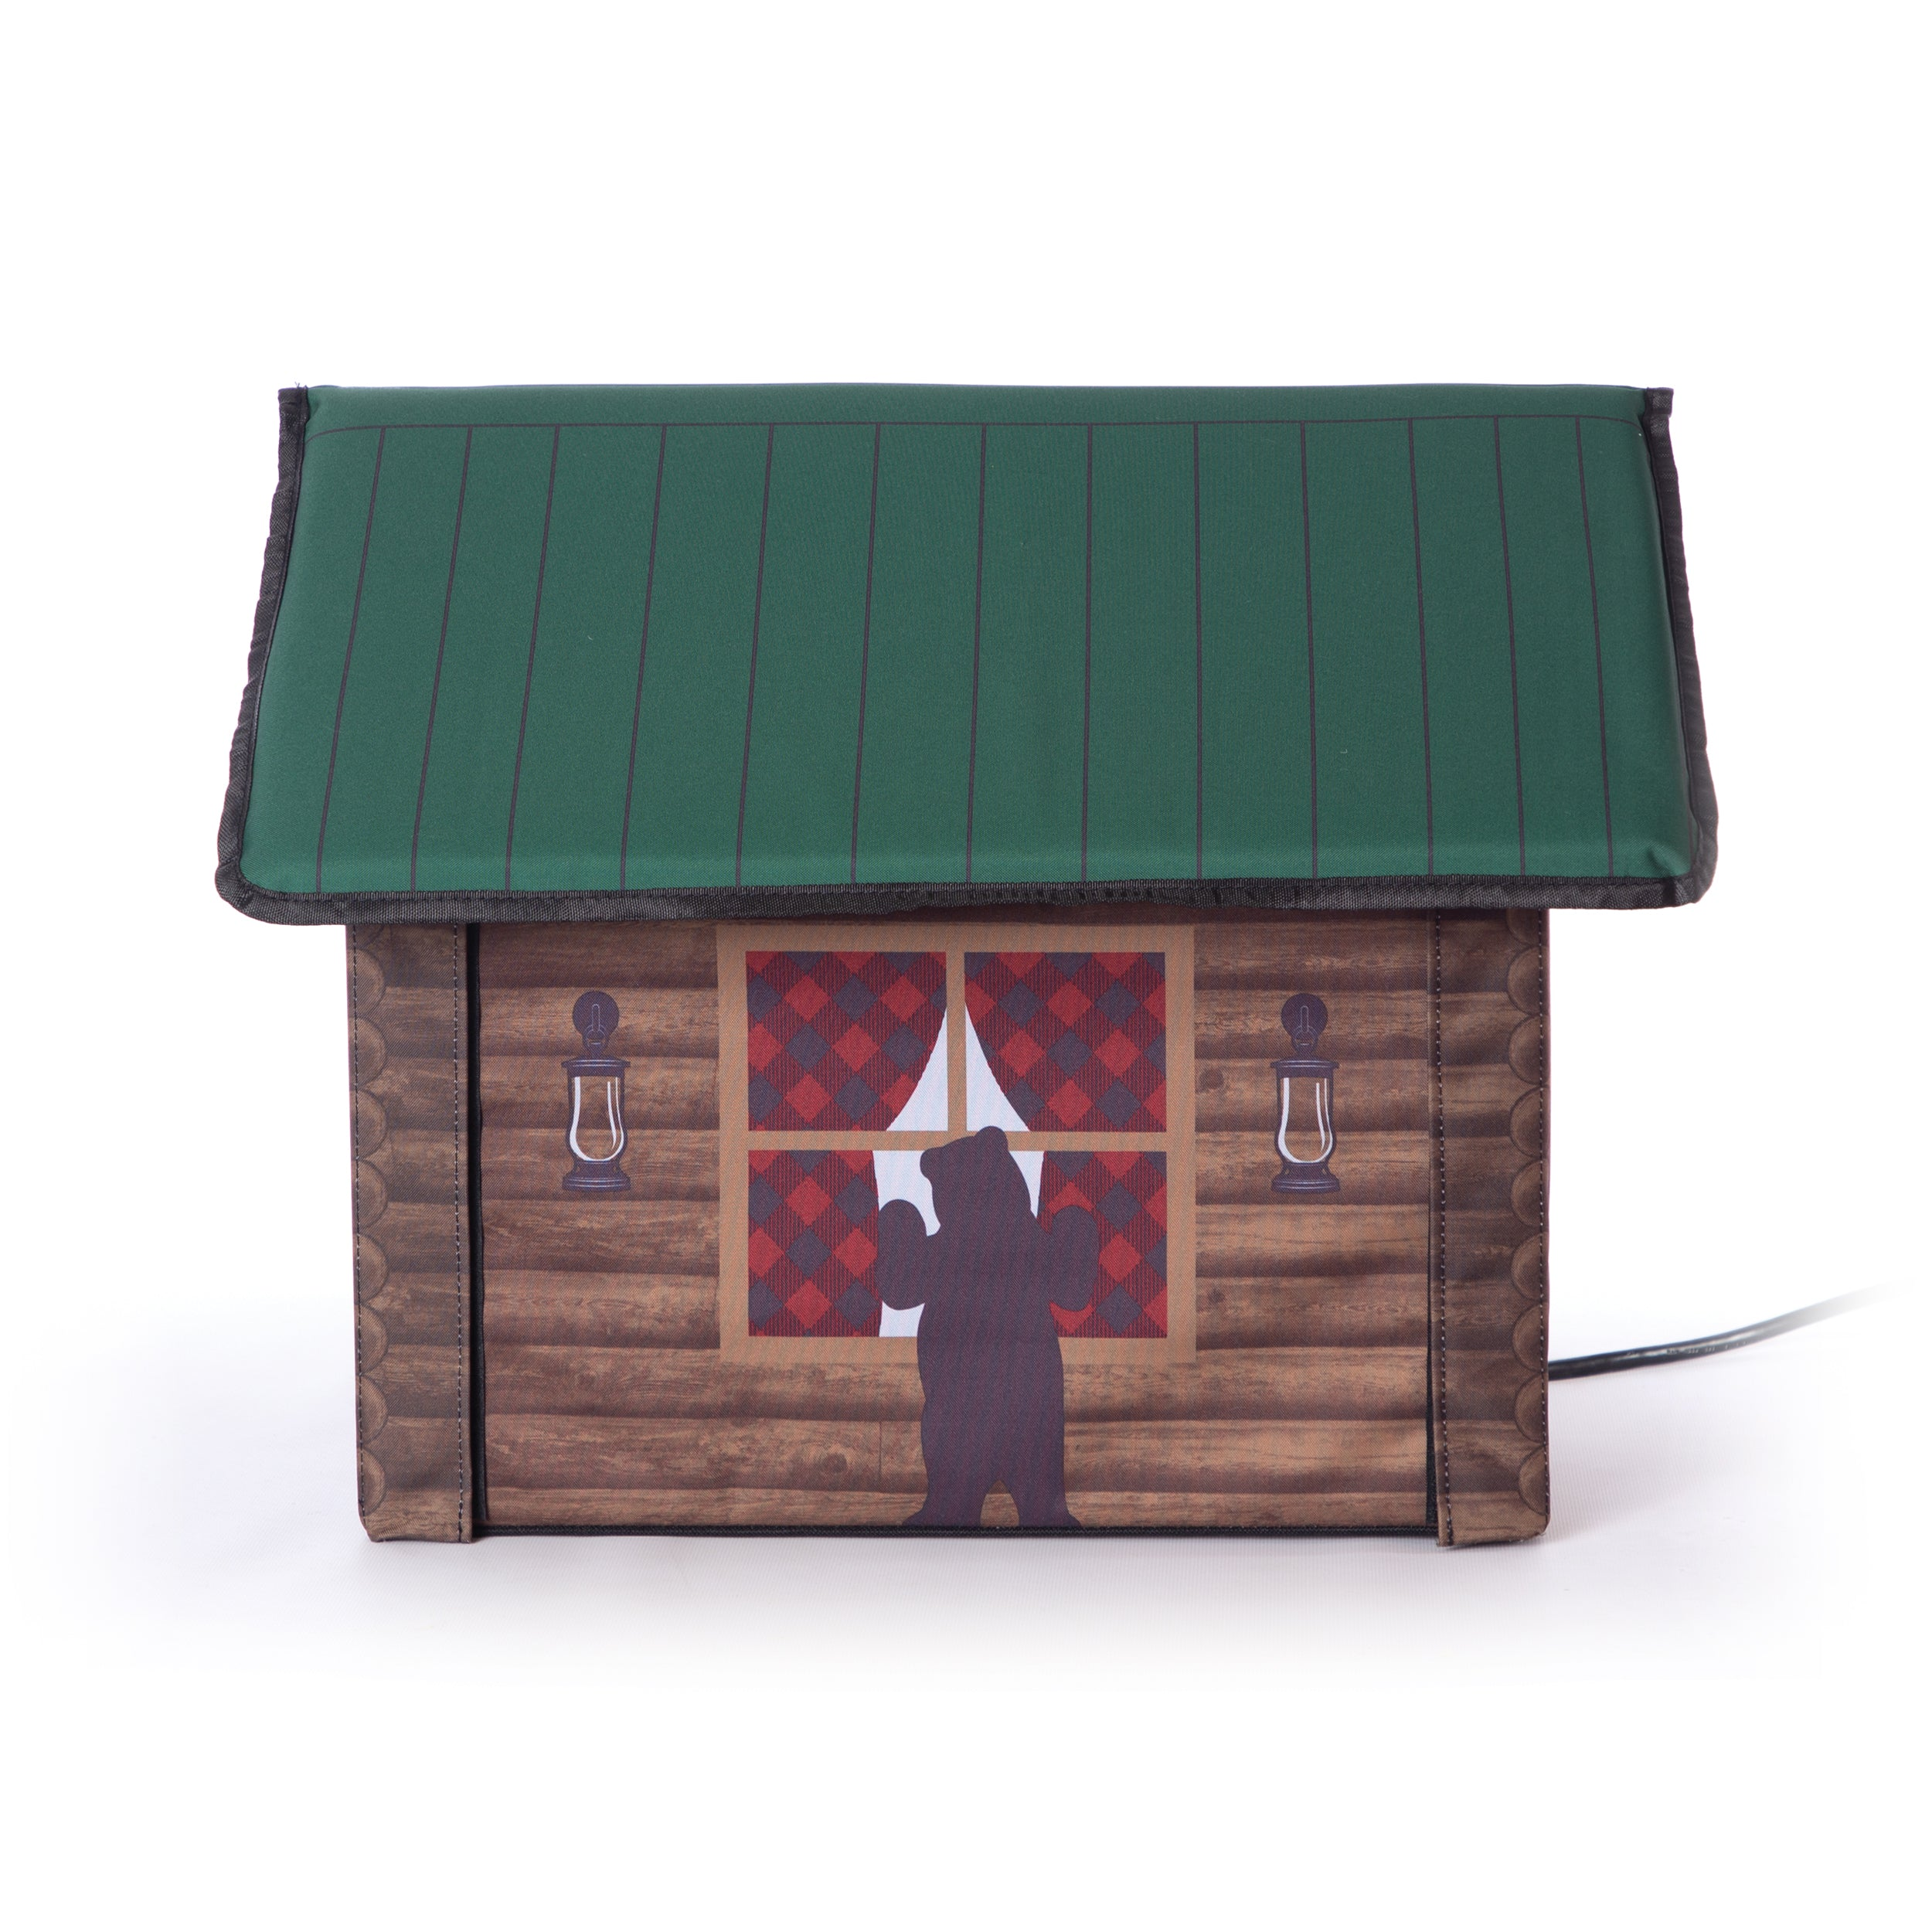 Outdoor Kitty House - Cabin Design - Side 2